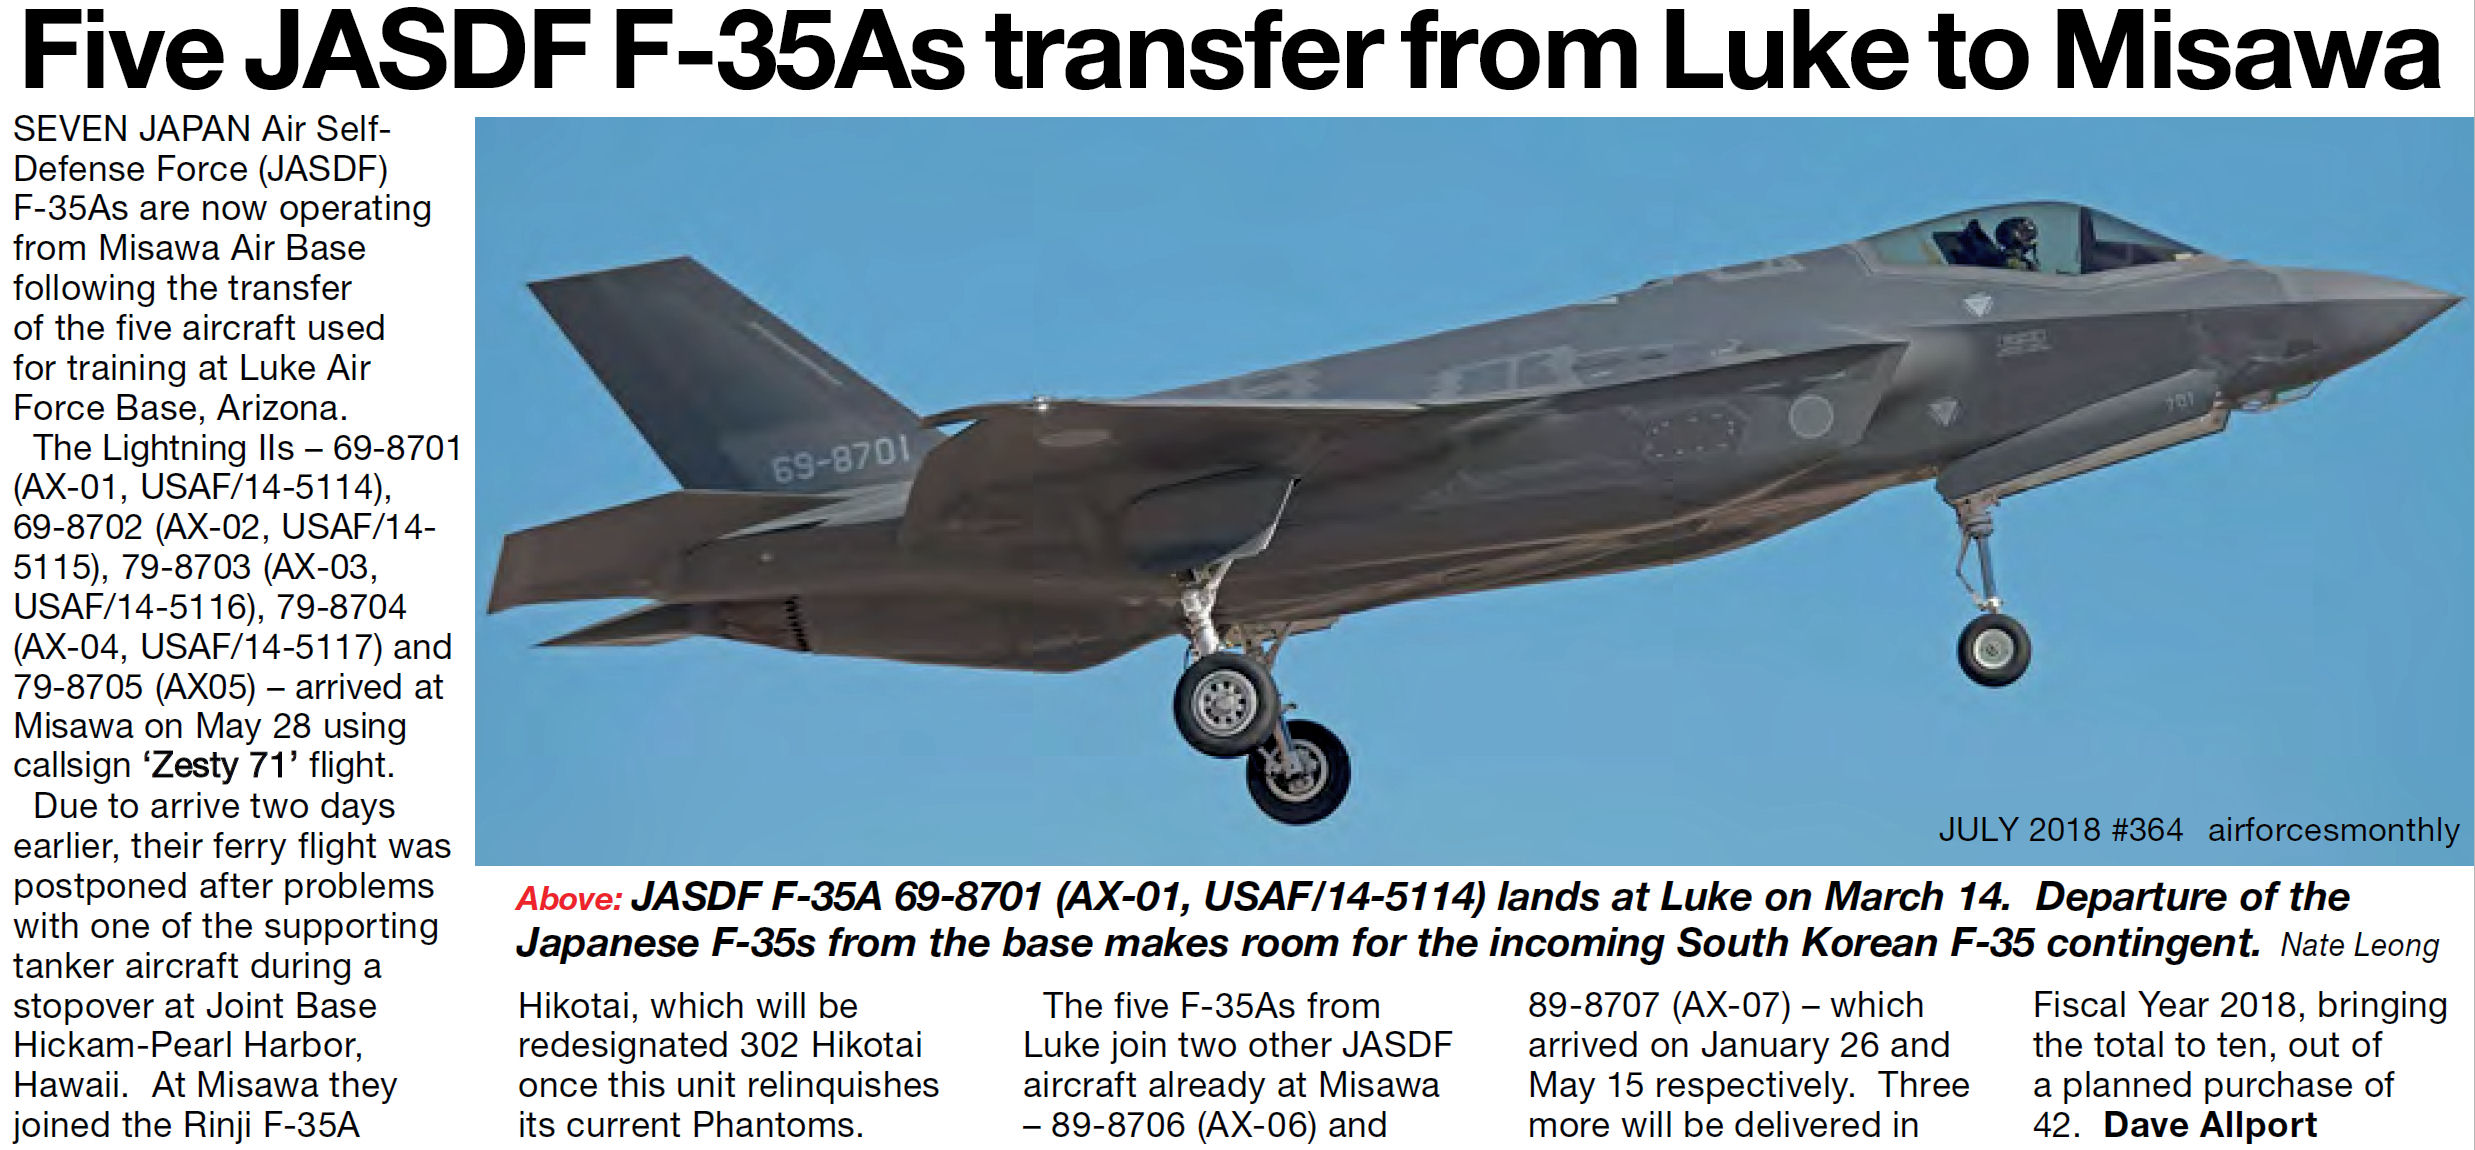 JASDF may be in the market for more F-35s - Program and politics